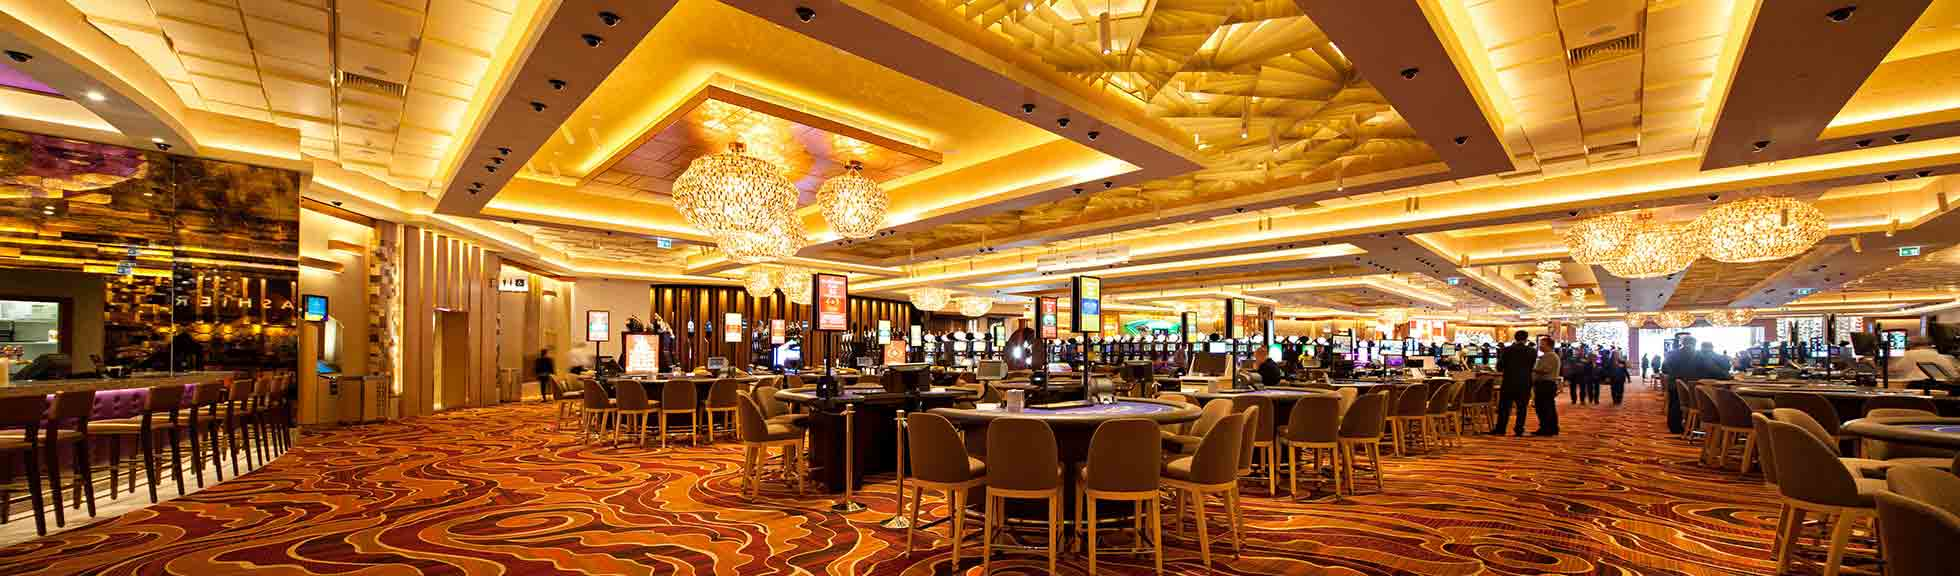 Although they were caught, the duo that took Australia's Crown Casino for over $30 mil suffered minimal consequences after being discovered. (Source: CrownPerth.com.au)